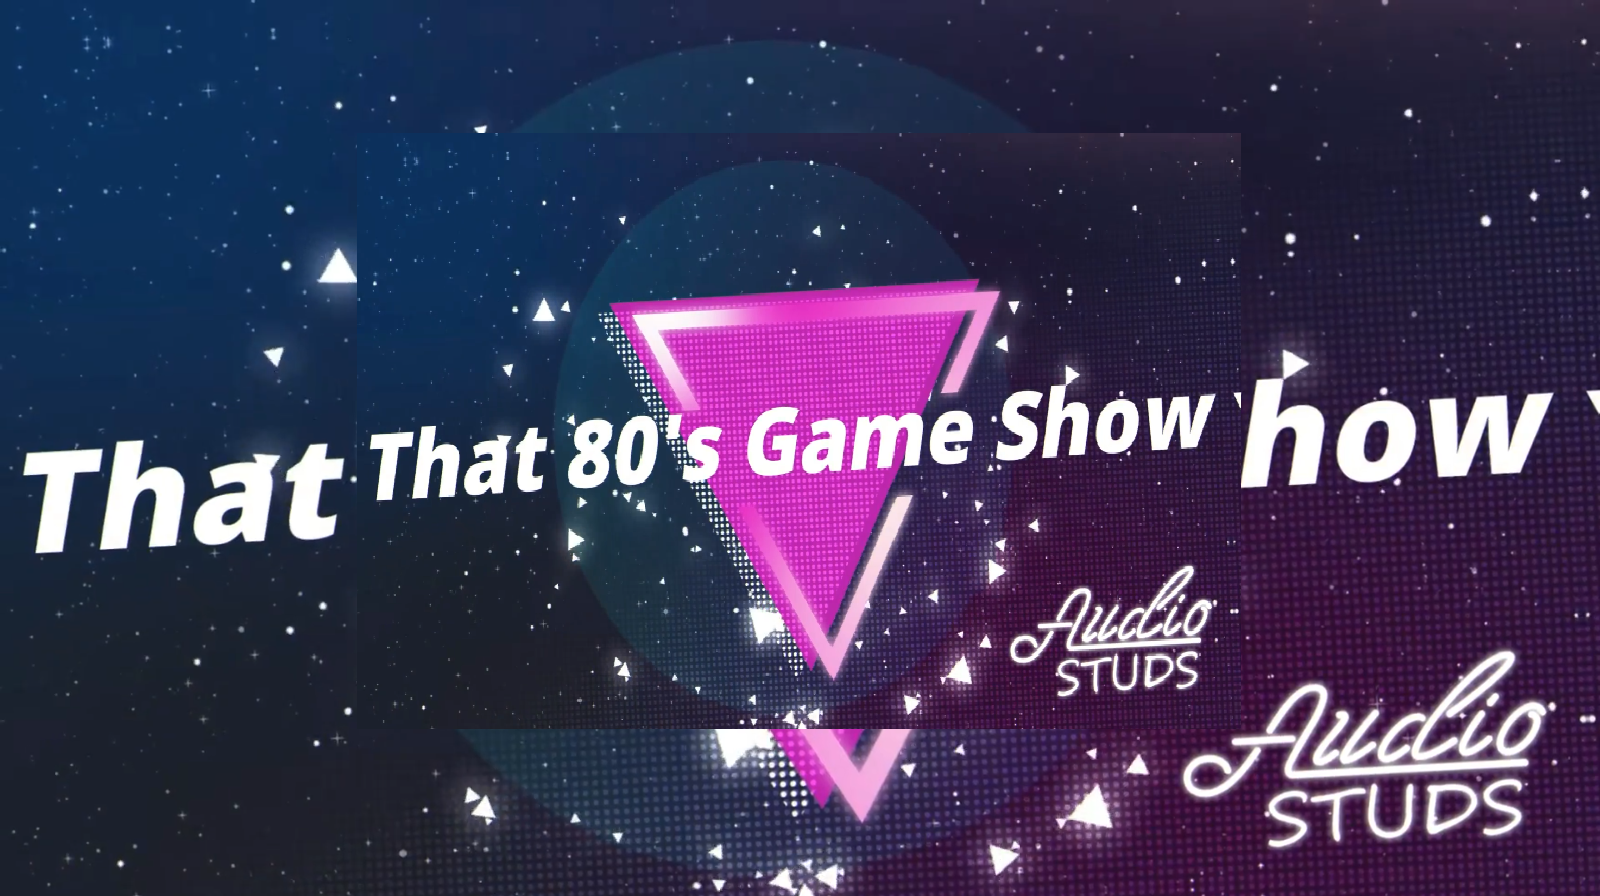 That 80's Game Show